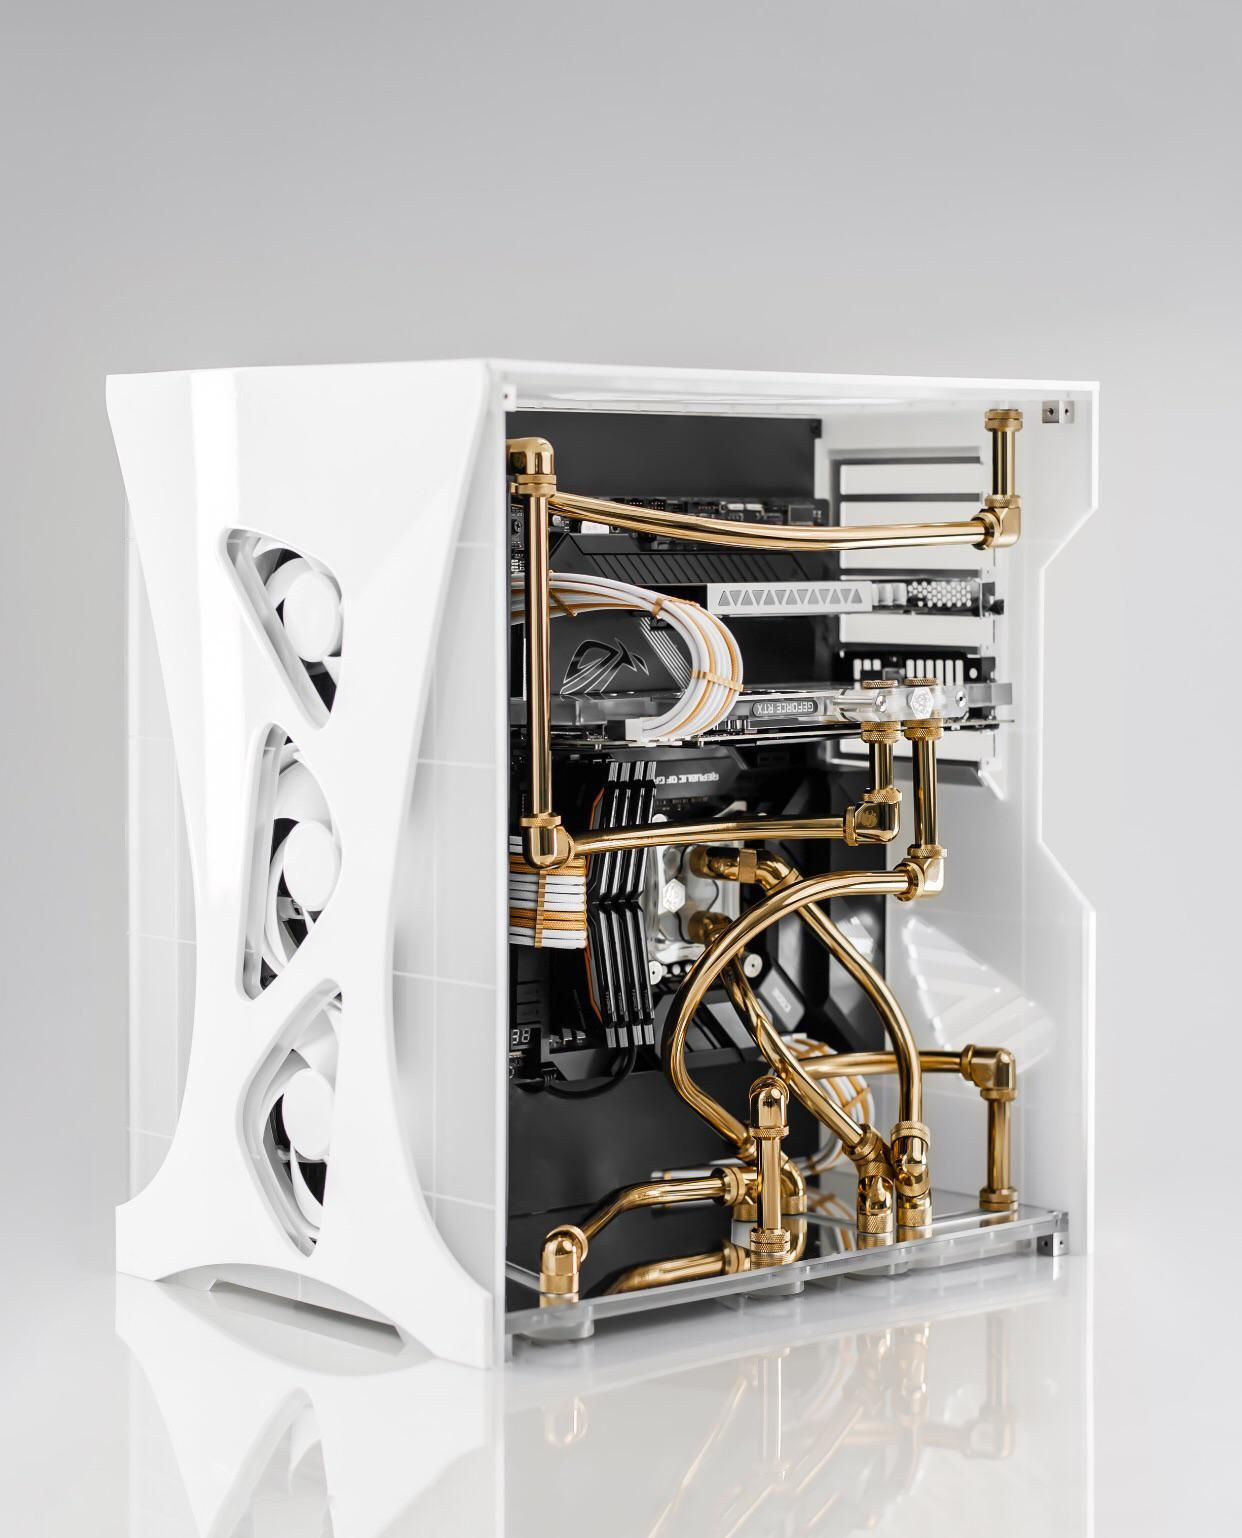 For This Build I Wanted To Run Gold Tubing With Some Bends That